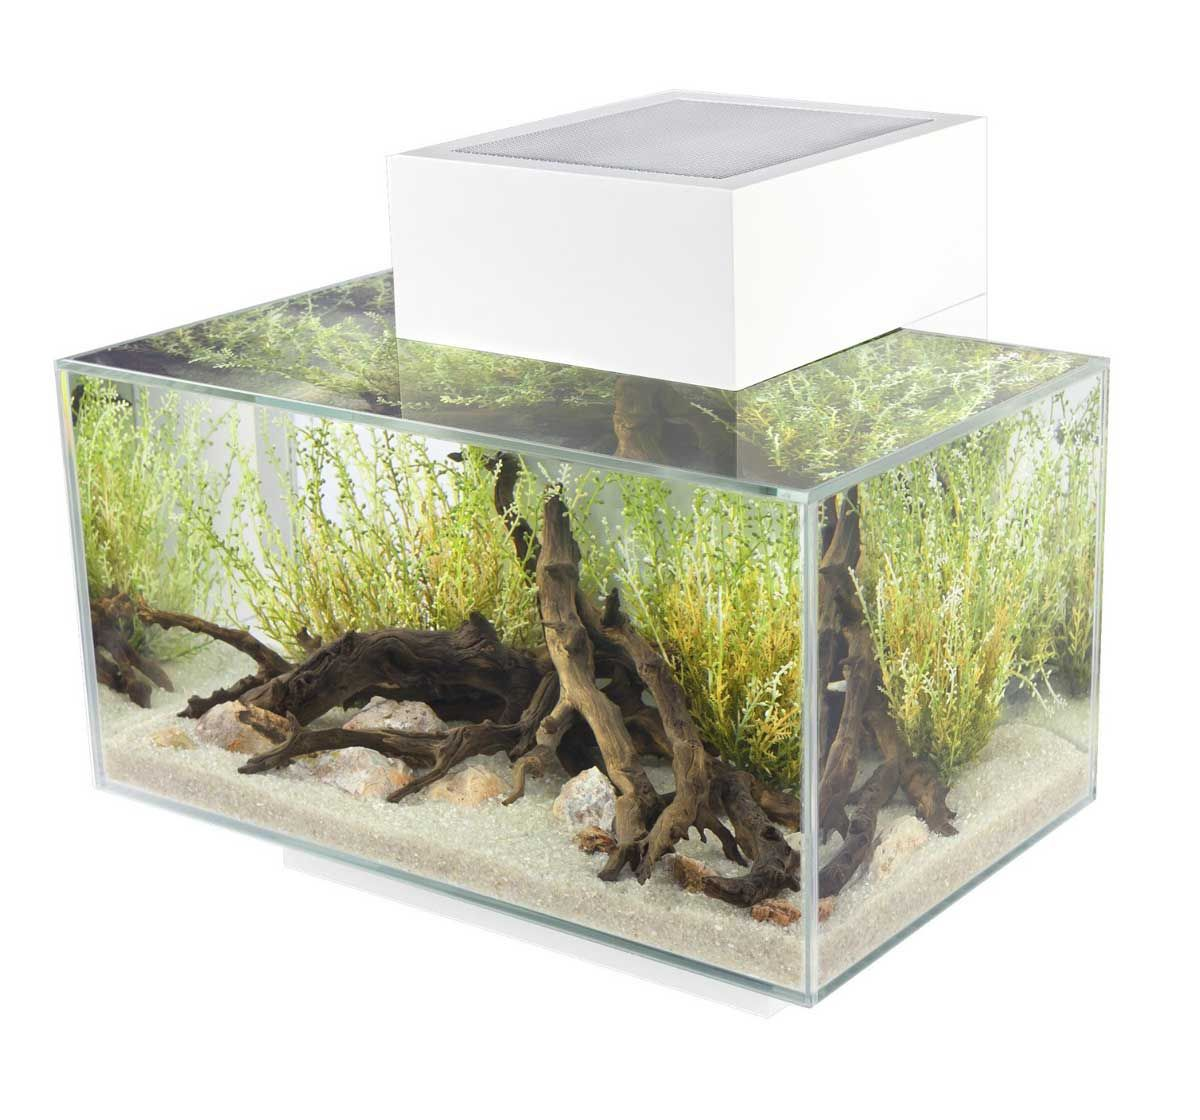 Fish for aquarium online - Buy Online Fluval Edge Aquarium Set Led White 23ltr At Online Fish Store India Http